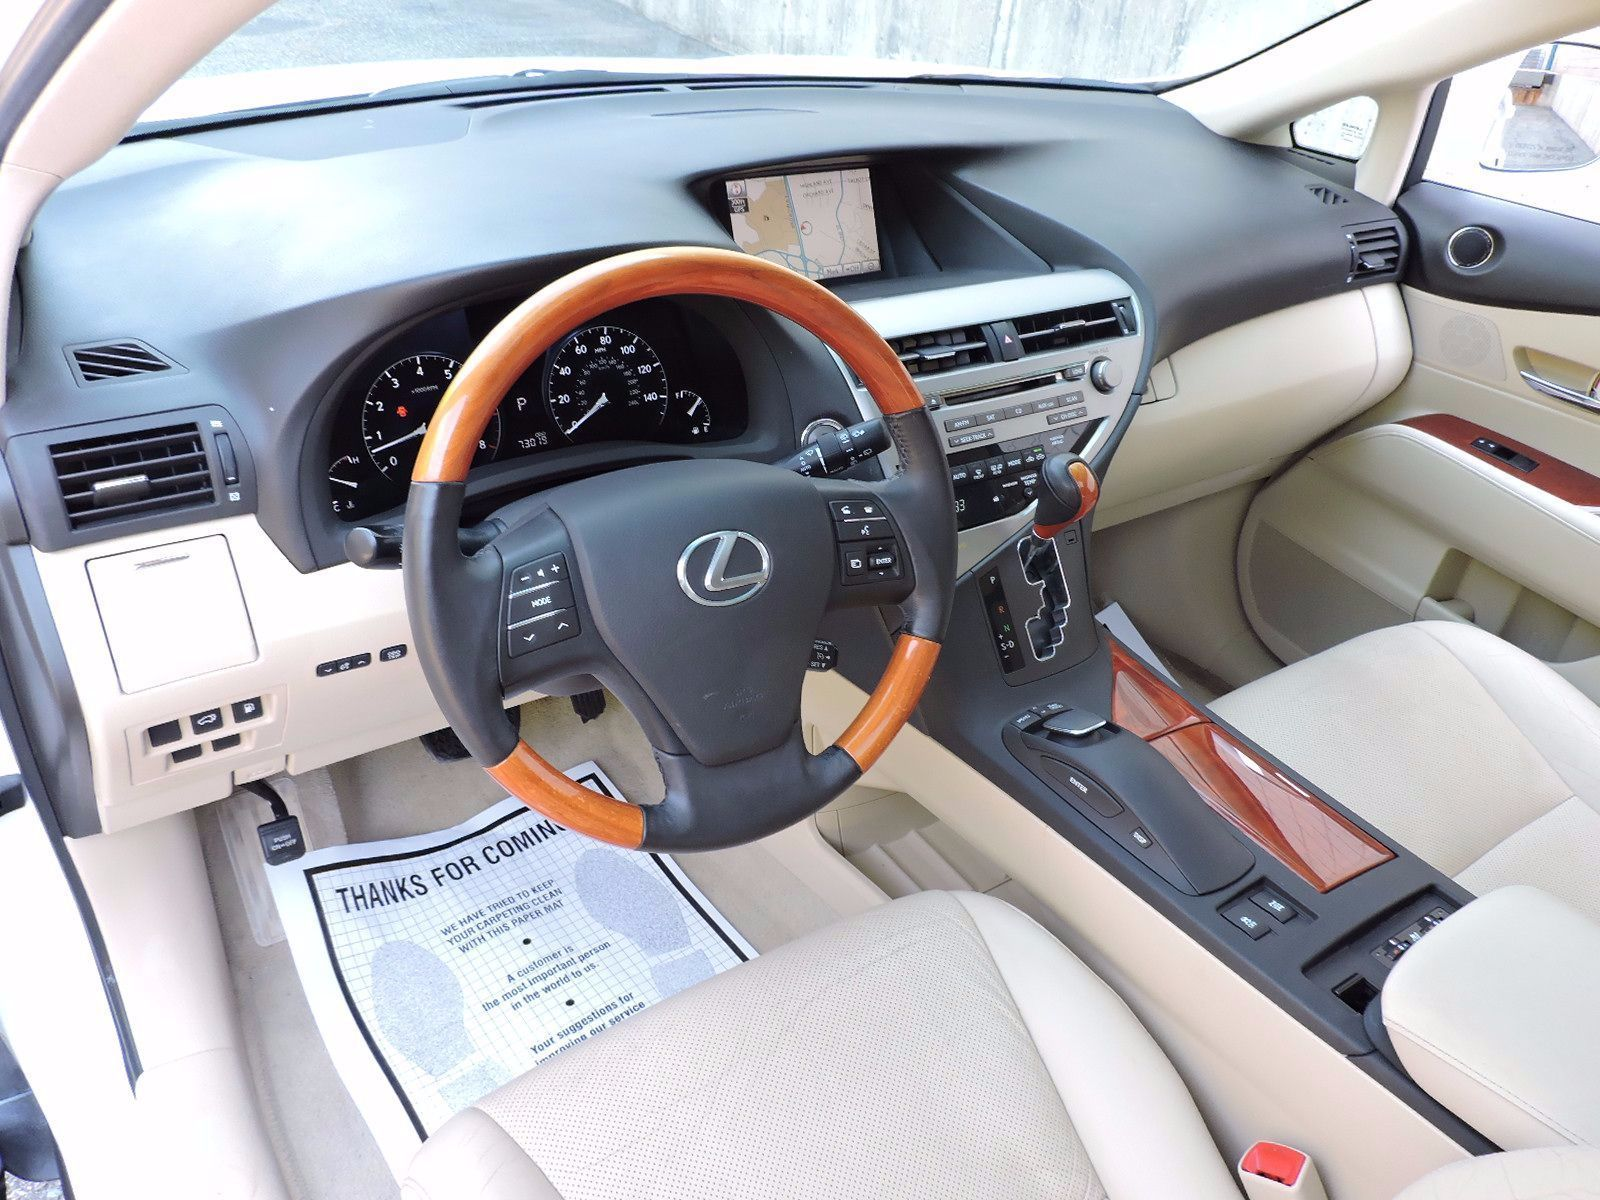 lexus runs used is detail great good your for suv family rx extra it extracleanrunsgreatitisgoodforyourfamilysuv clean